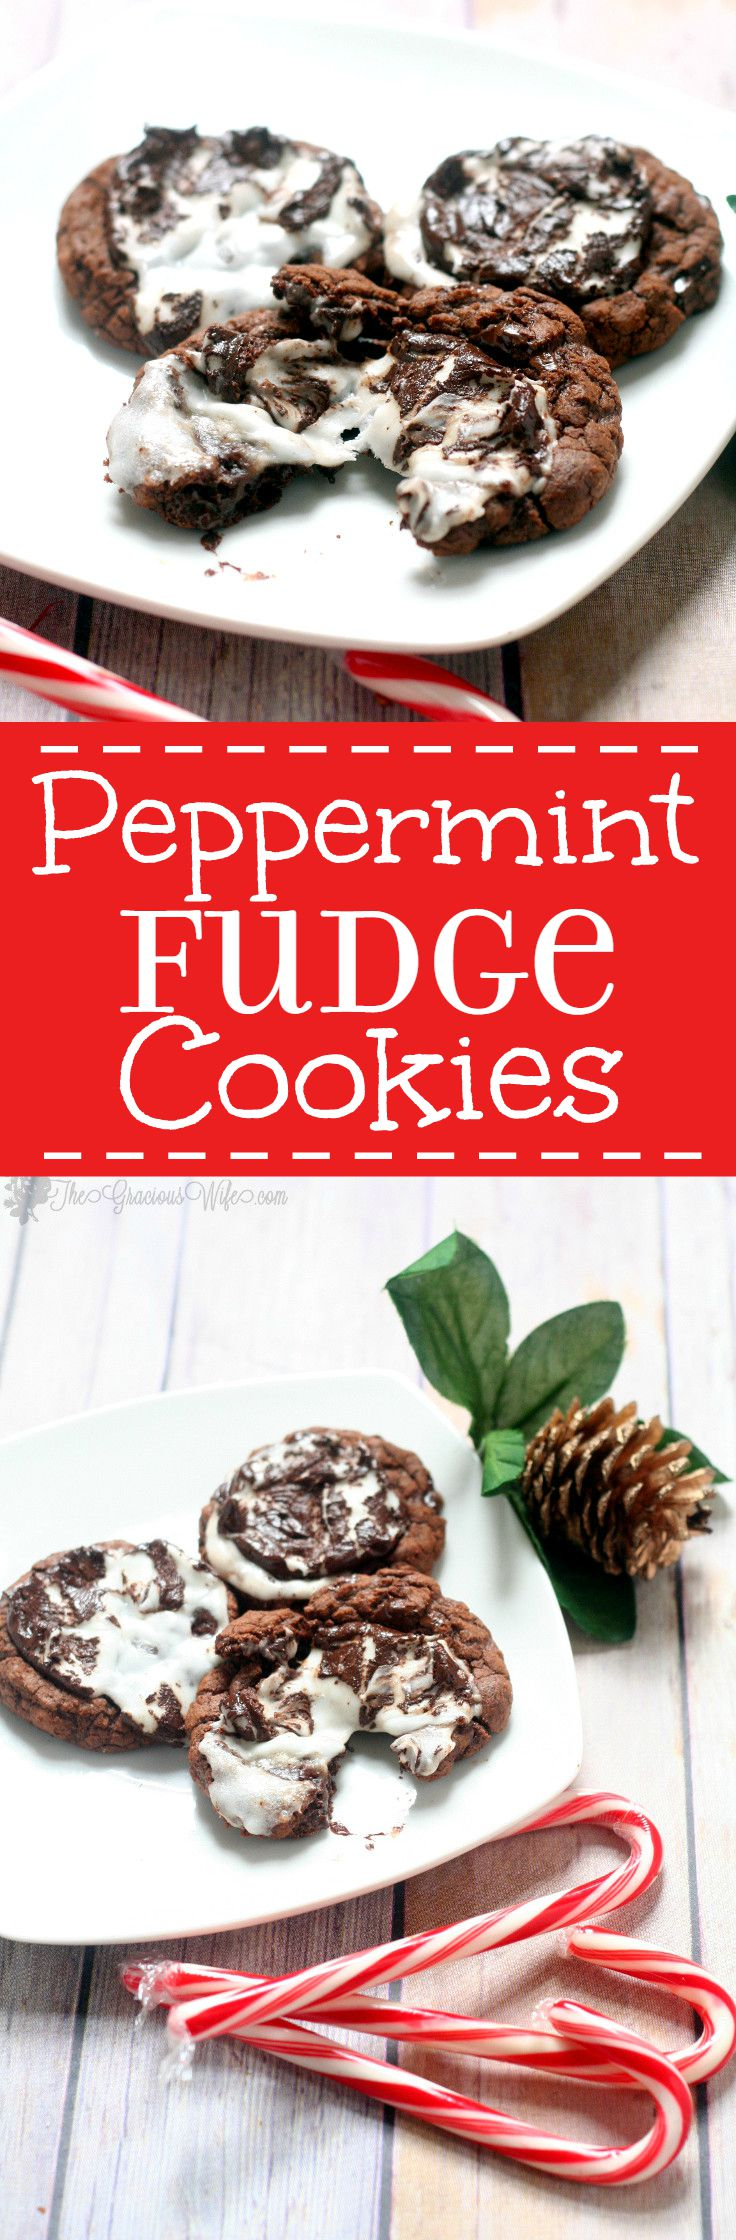 Peppermint Fudge Cookies are a chocolate fudge dream, topped with a peppermint patty for a little Christmas festiveness. Homemade Christmas Cookies are an essential for the holiday! These are the best! I mean seriously, what could be better than mint and chocolate wrapped in a delicious gooey cookie package?!